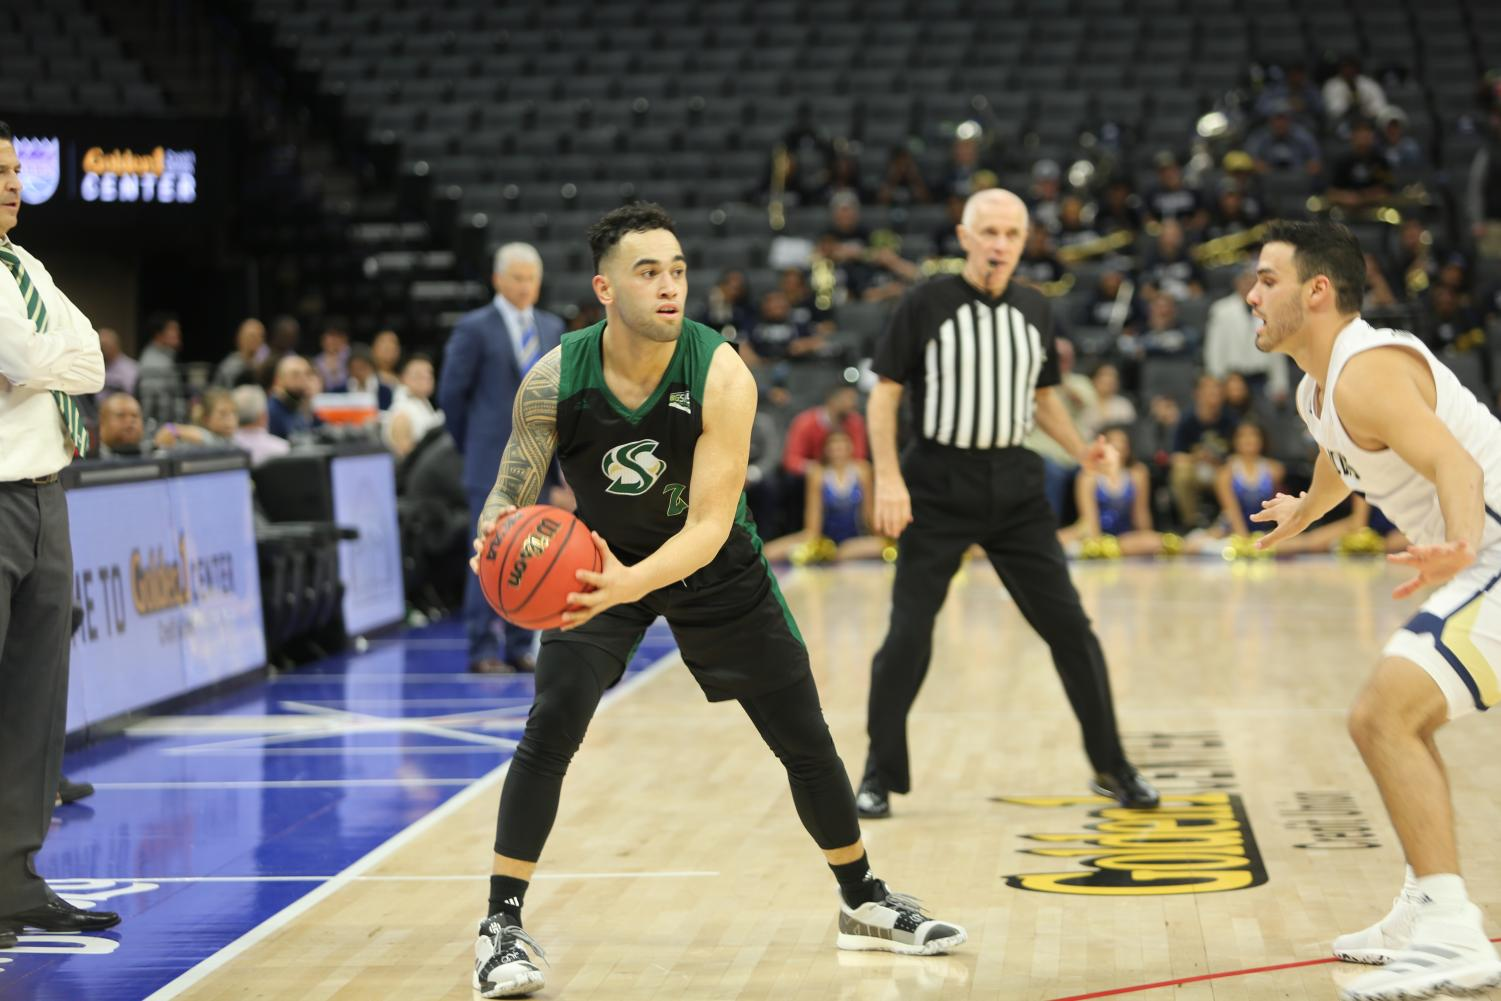 Sac State senior guard Izayah Mauriohooho-Le'afa attempts to make a bounce pass against UC Davis senior guard Stefan Gonzalez on Wednesday, Nov. 20 at Golden 1 Center. Mauriohooho-Le'afa had a game-high 23 points in the Hornets 77-72 win on the road at Pepperdine on Saturday night.